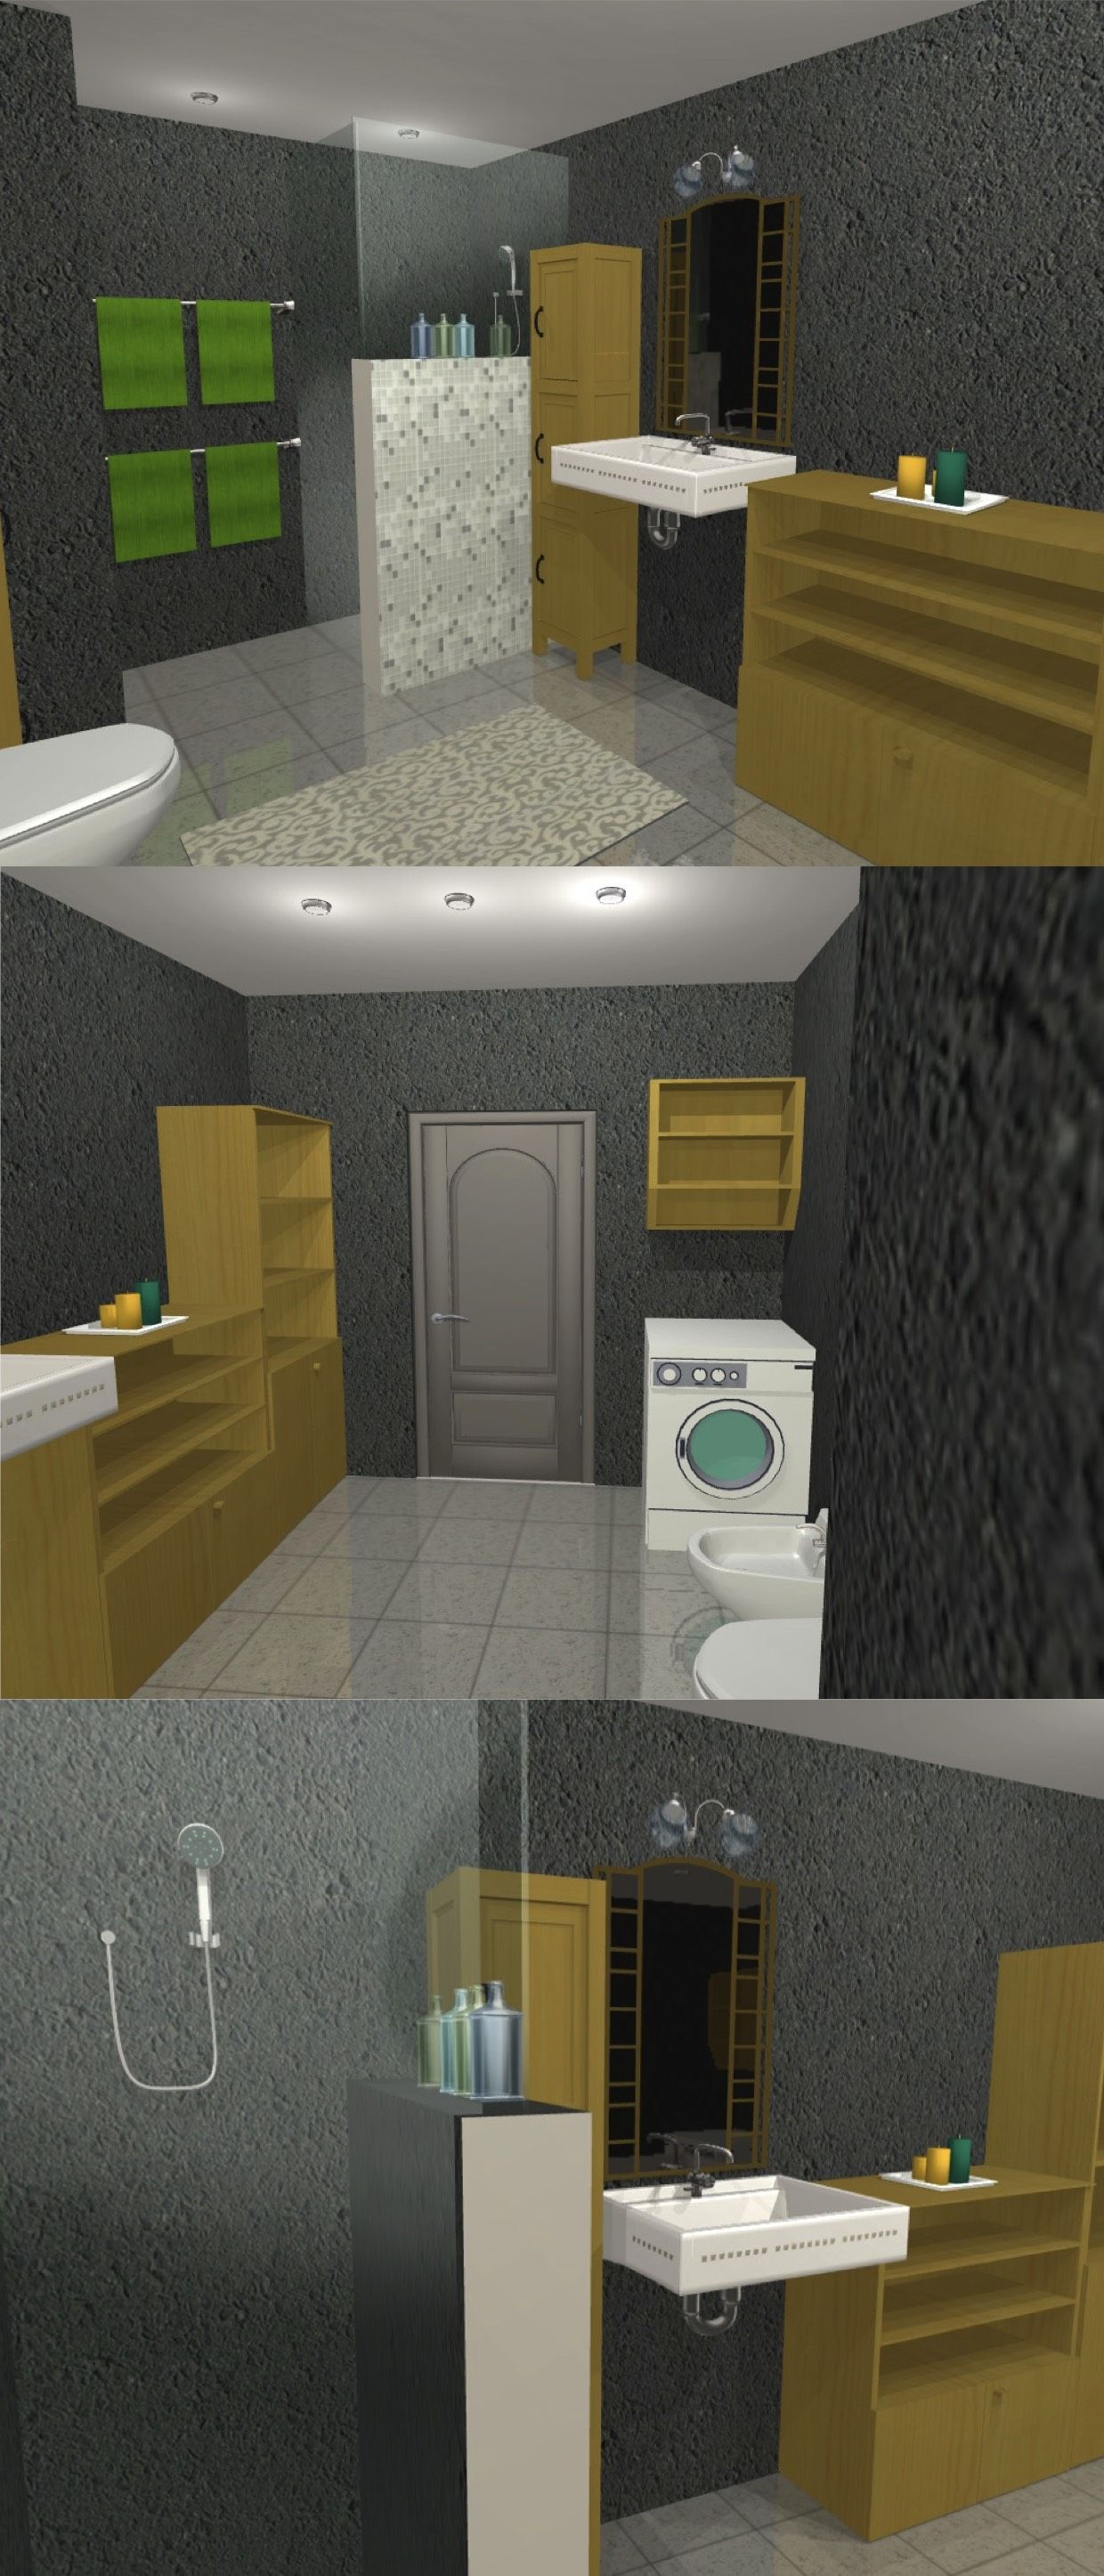 Design your bathroom with #LiveHome3D #homedesign # ...